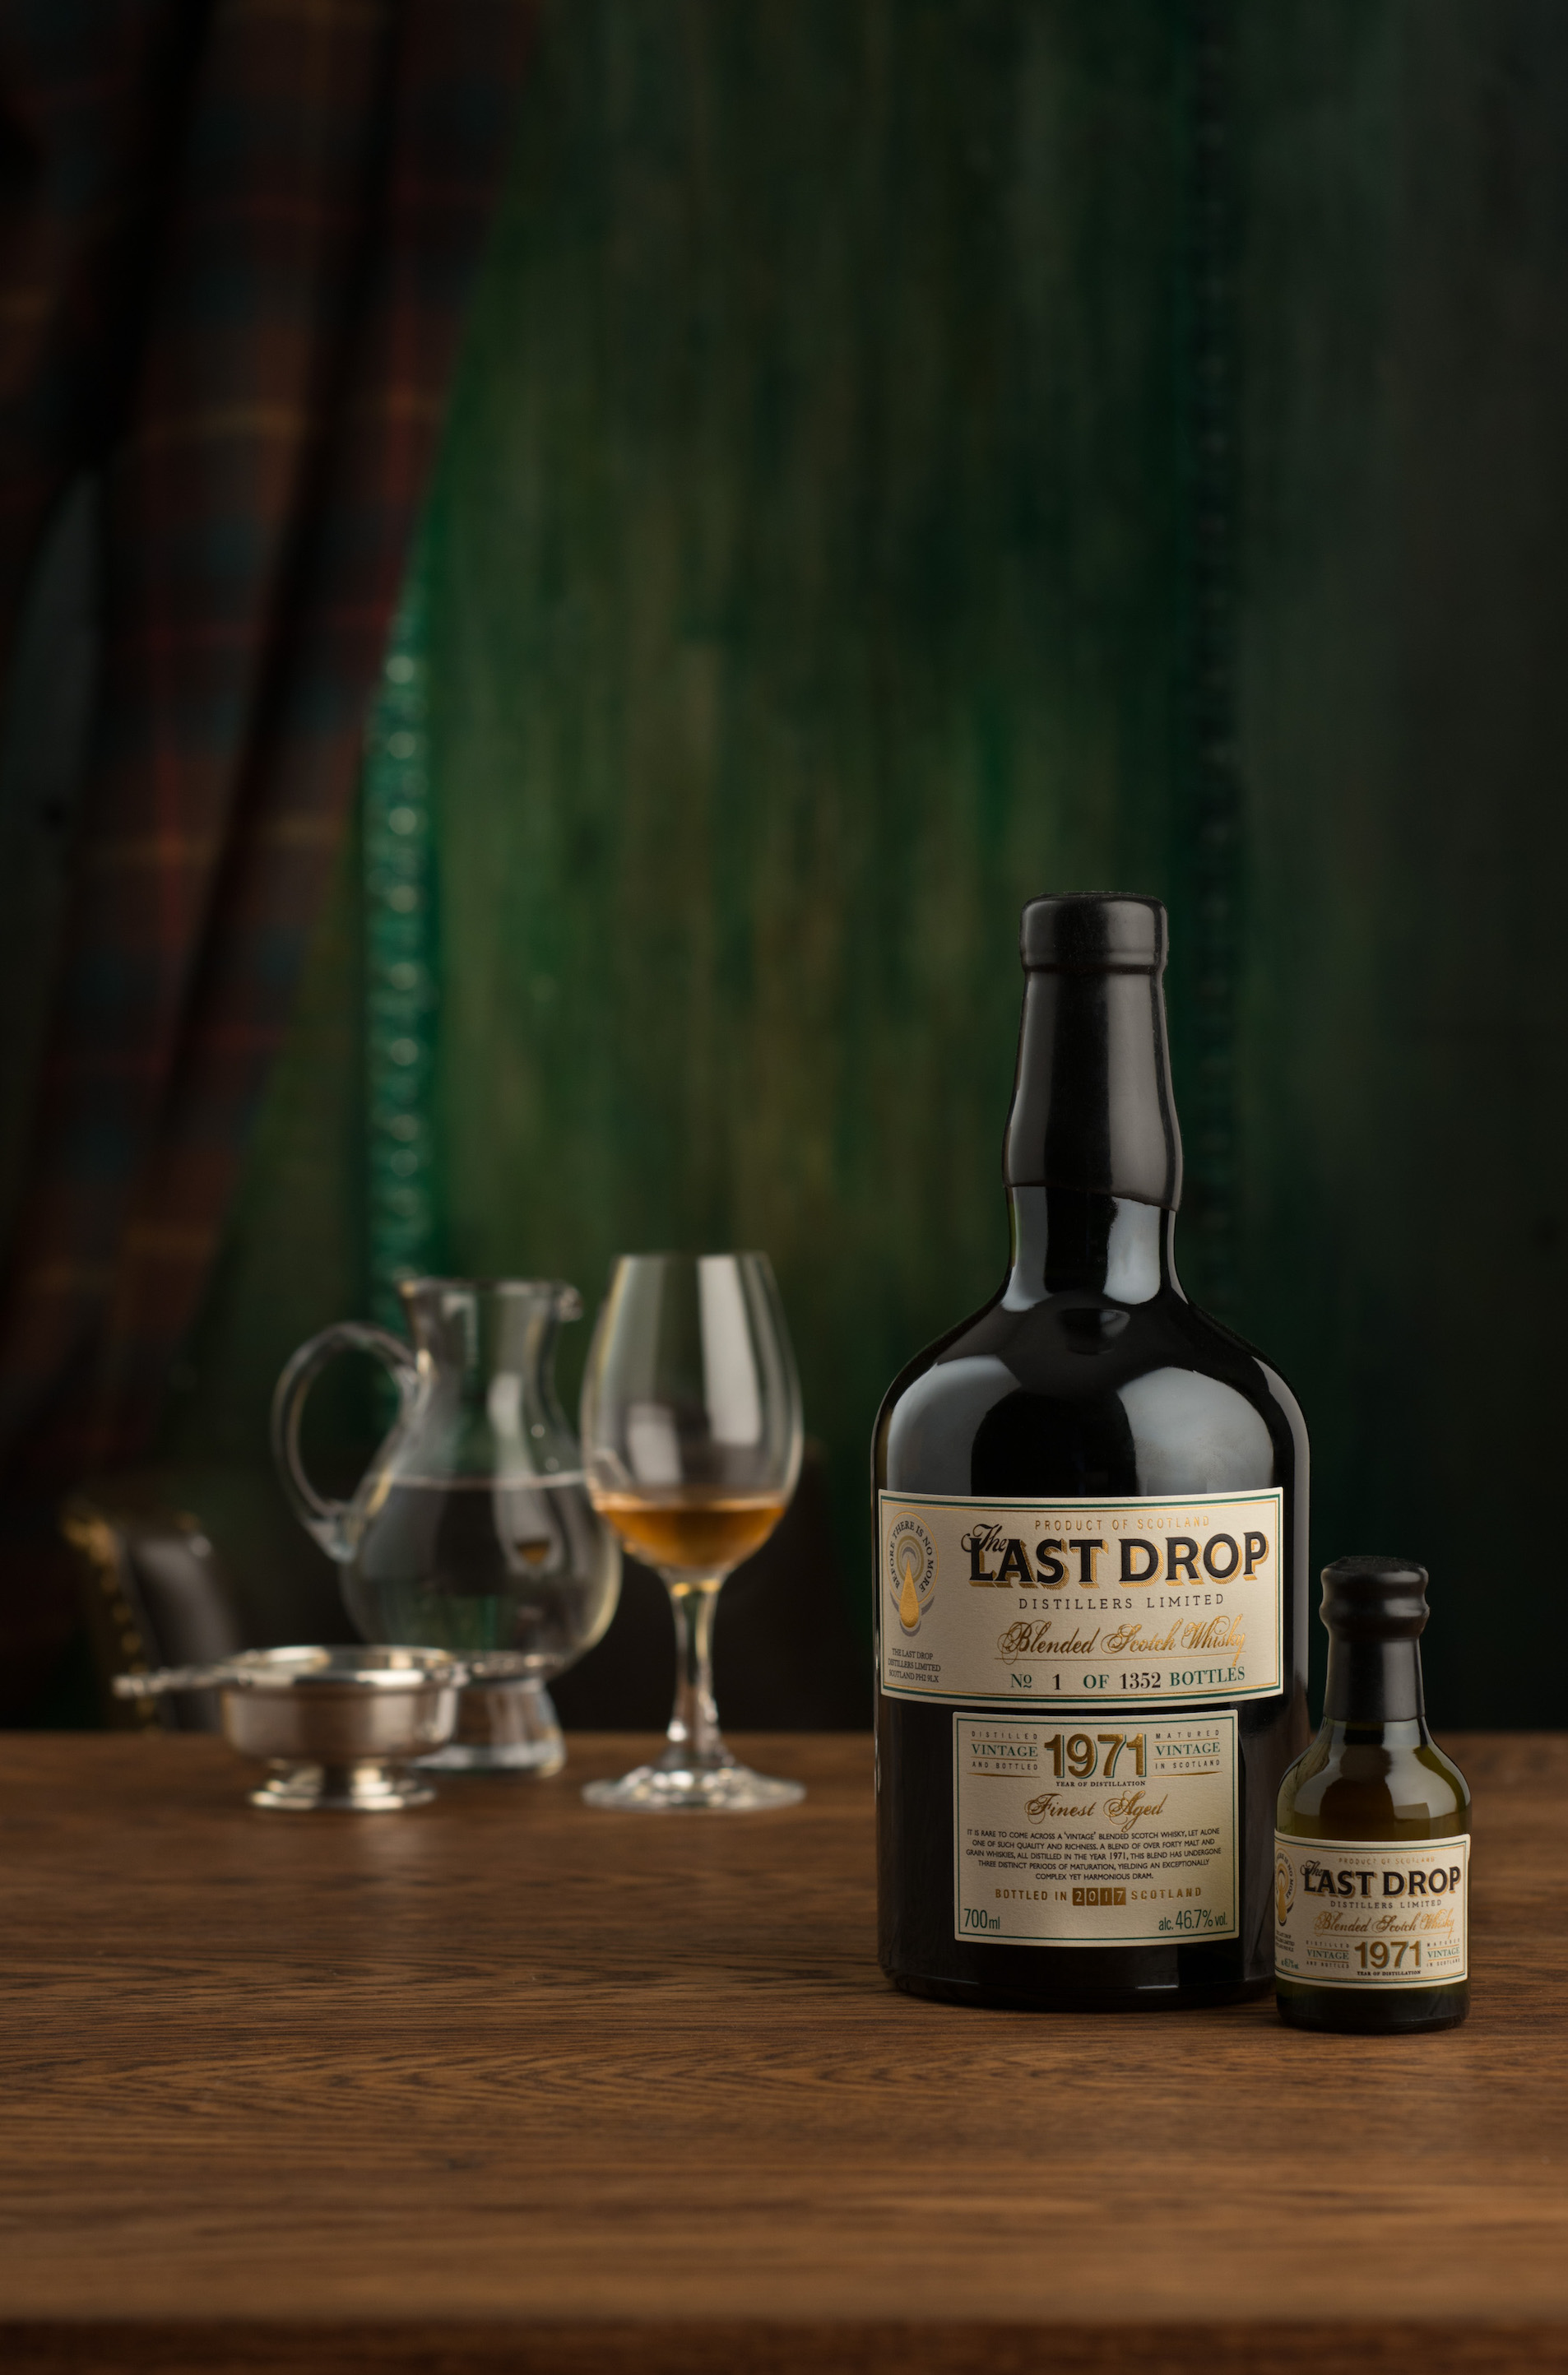 The-Last-Drop-1971-Blended-Scotch-Whisky.jpg